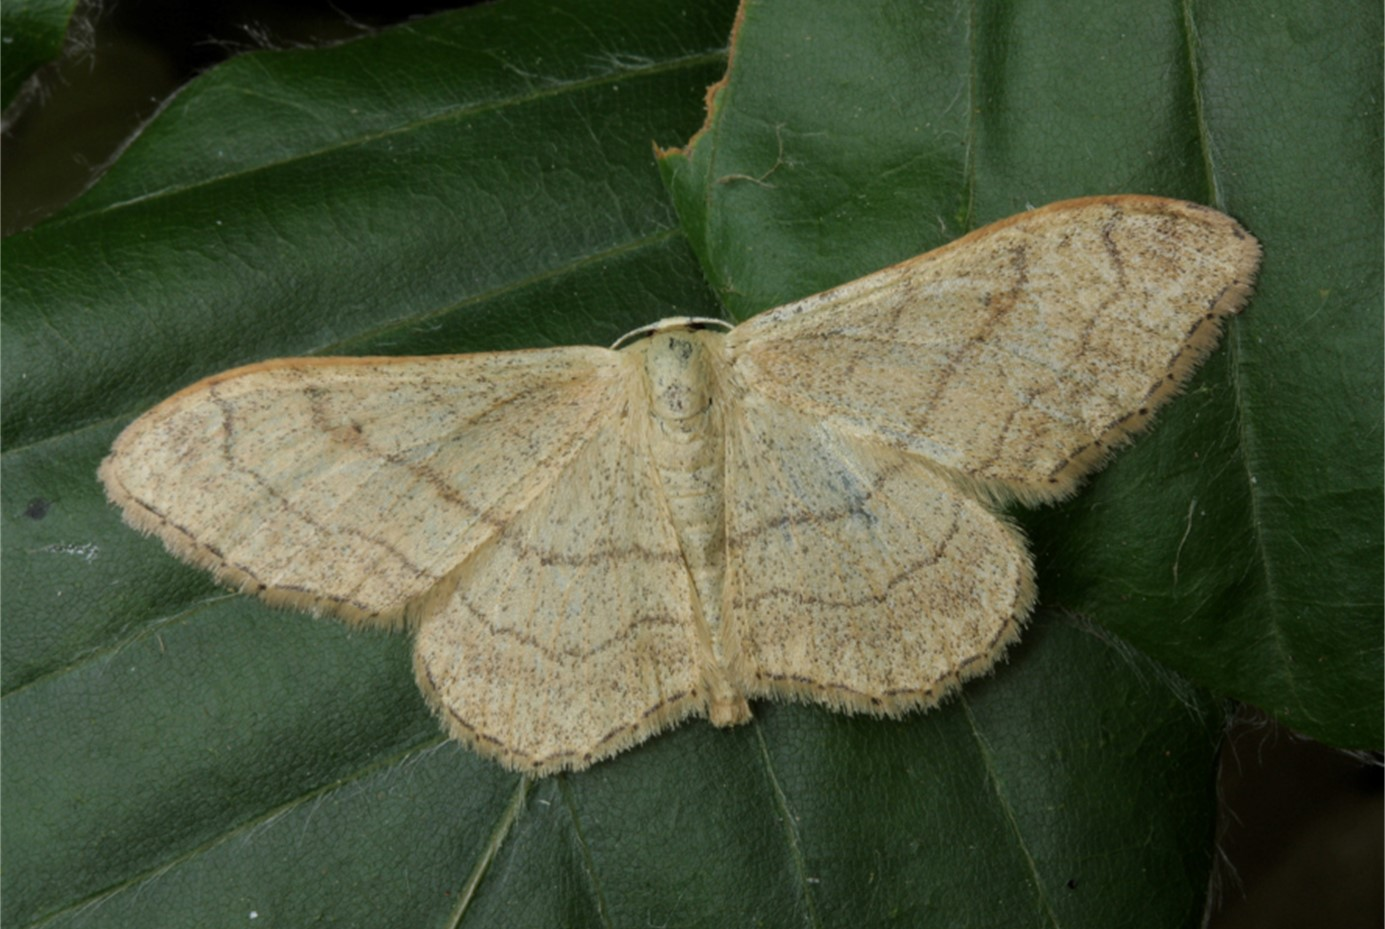 Riband Wave Idaea aversata, David Green